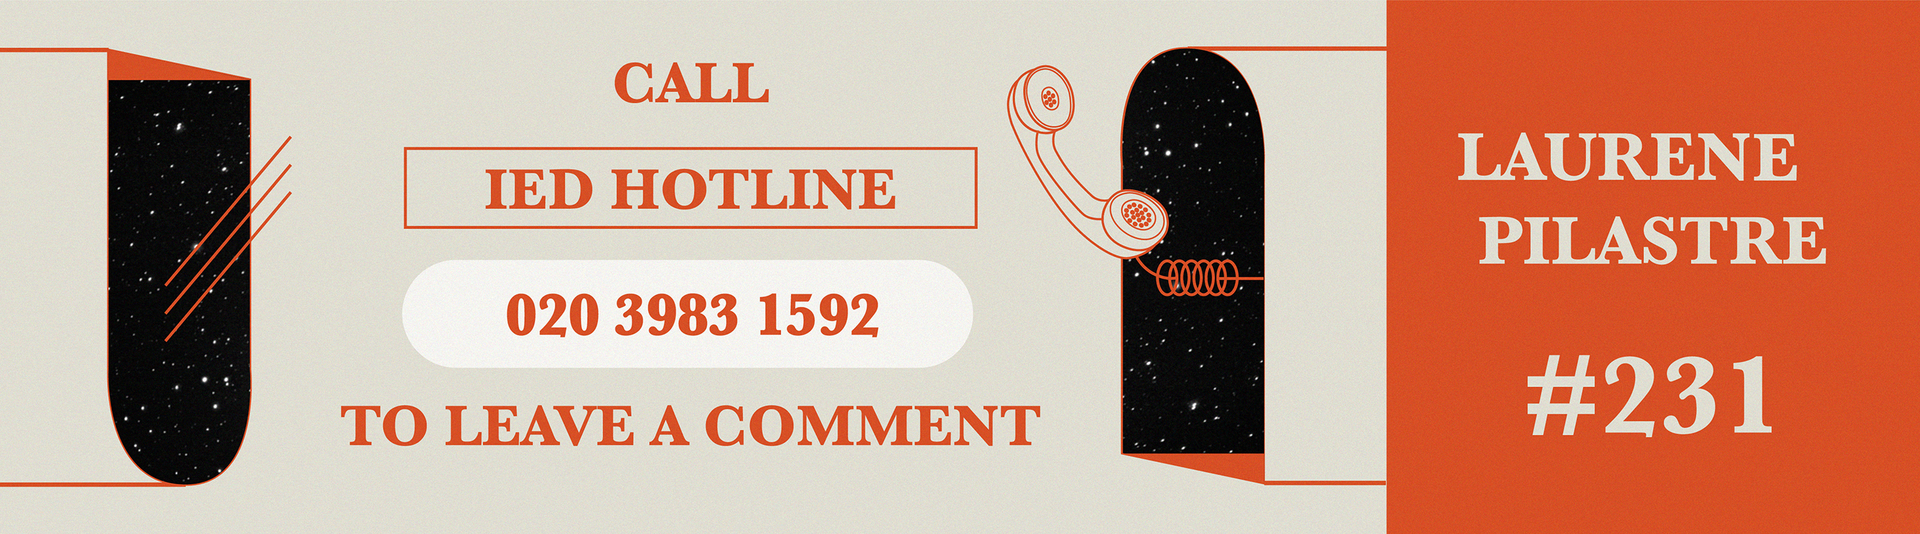 Call IED hotline to leave a comment or get in touch with the artist